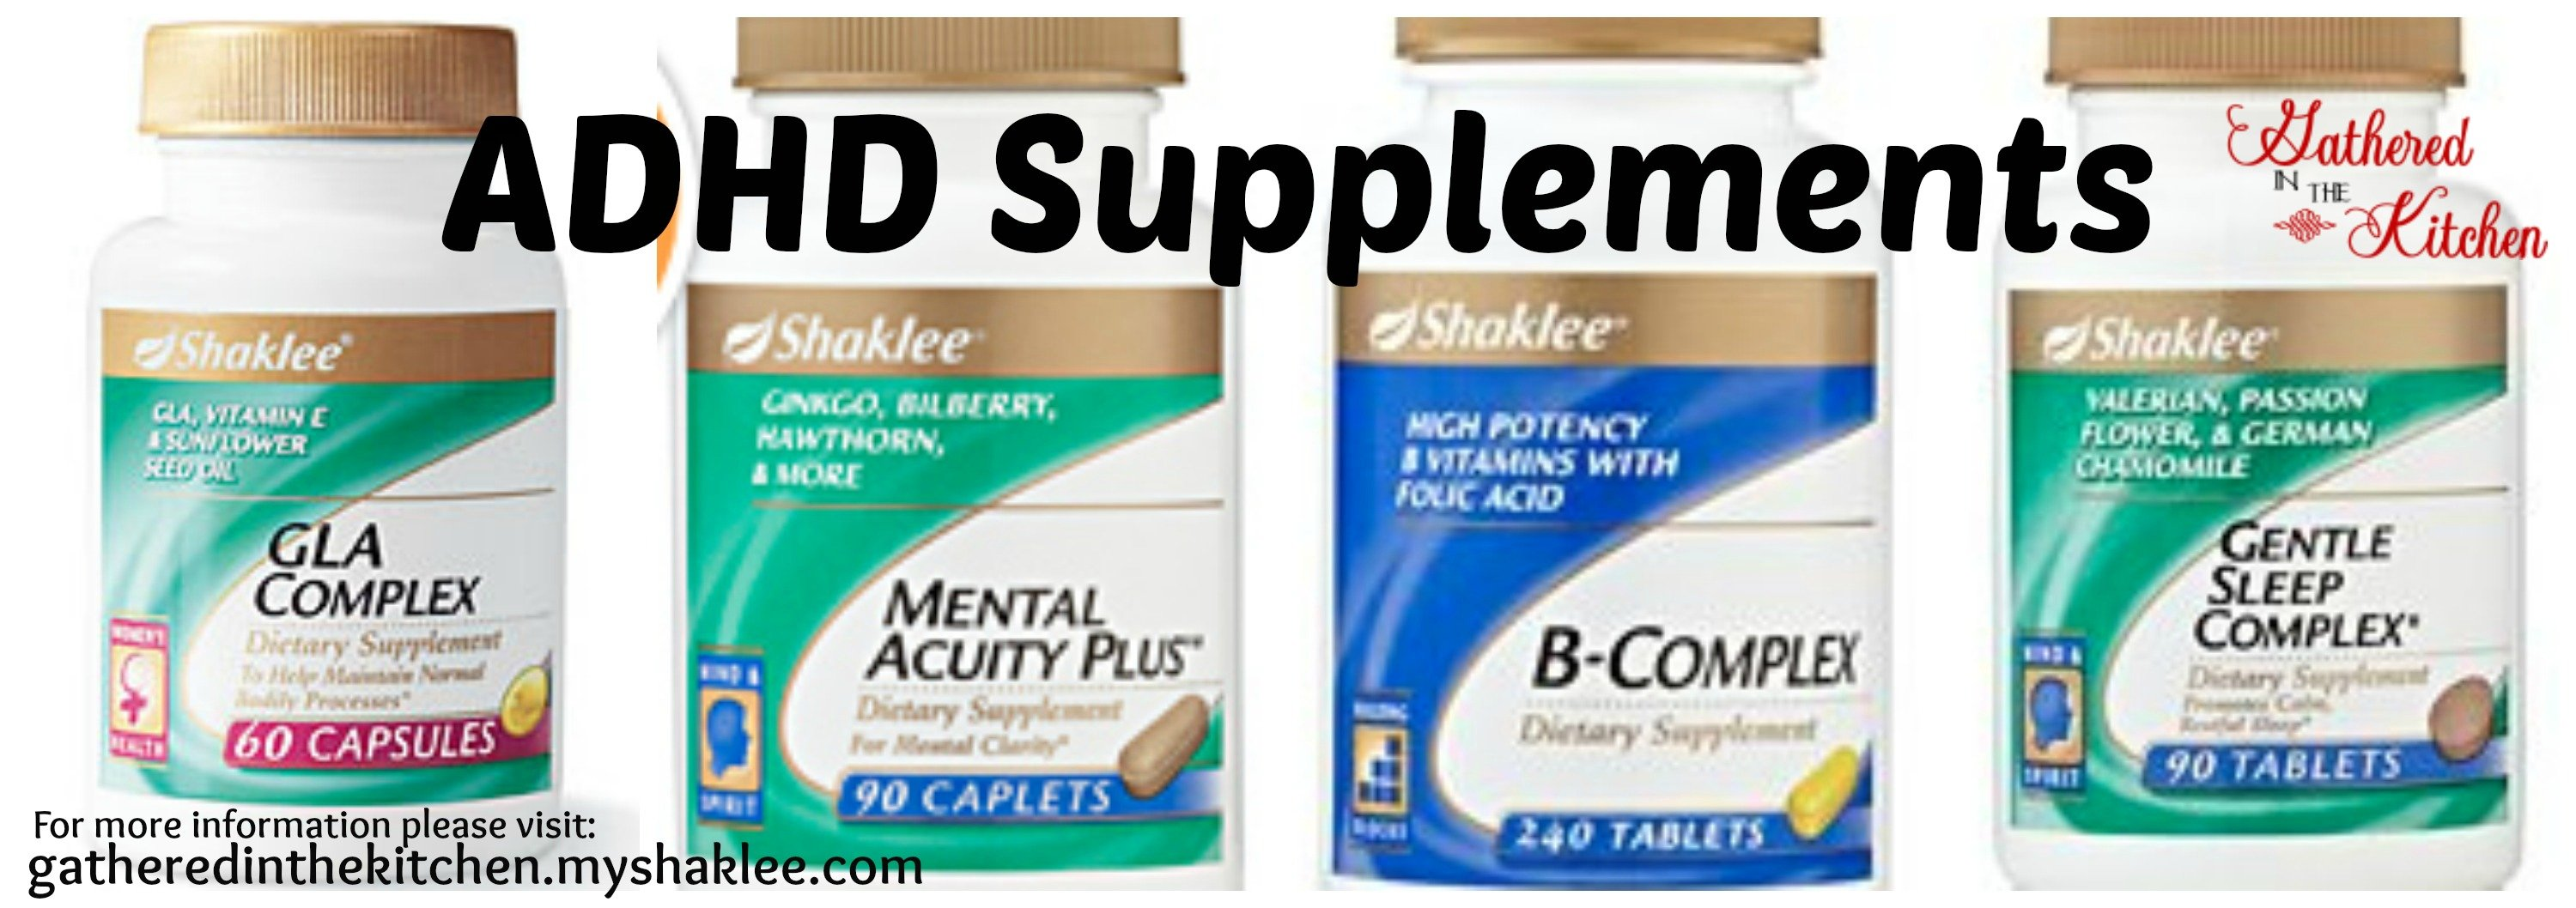 ADHD Shaklee supplements1